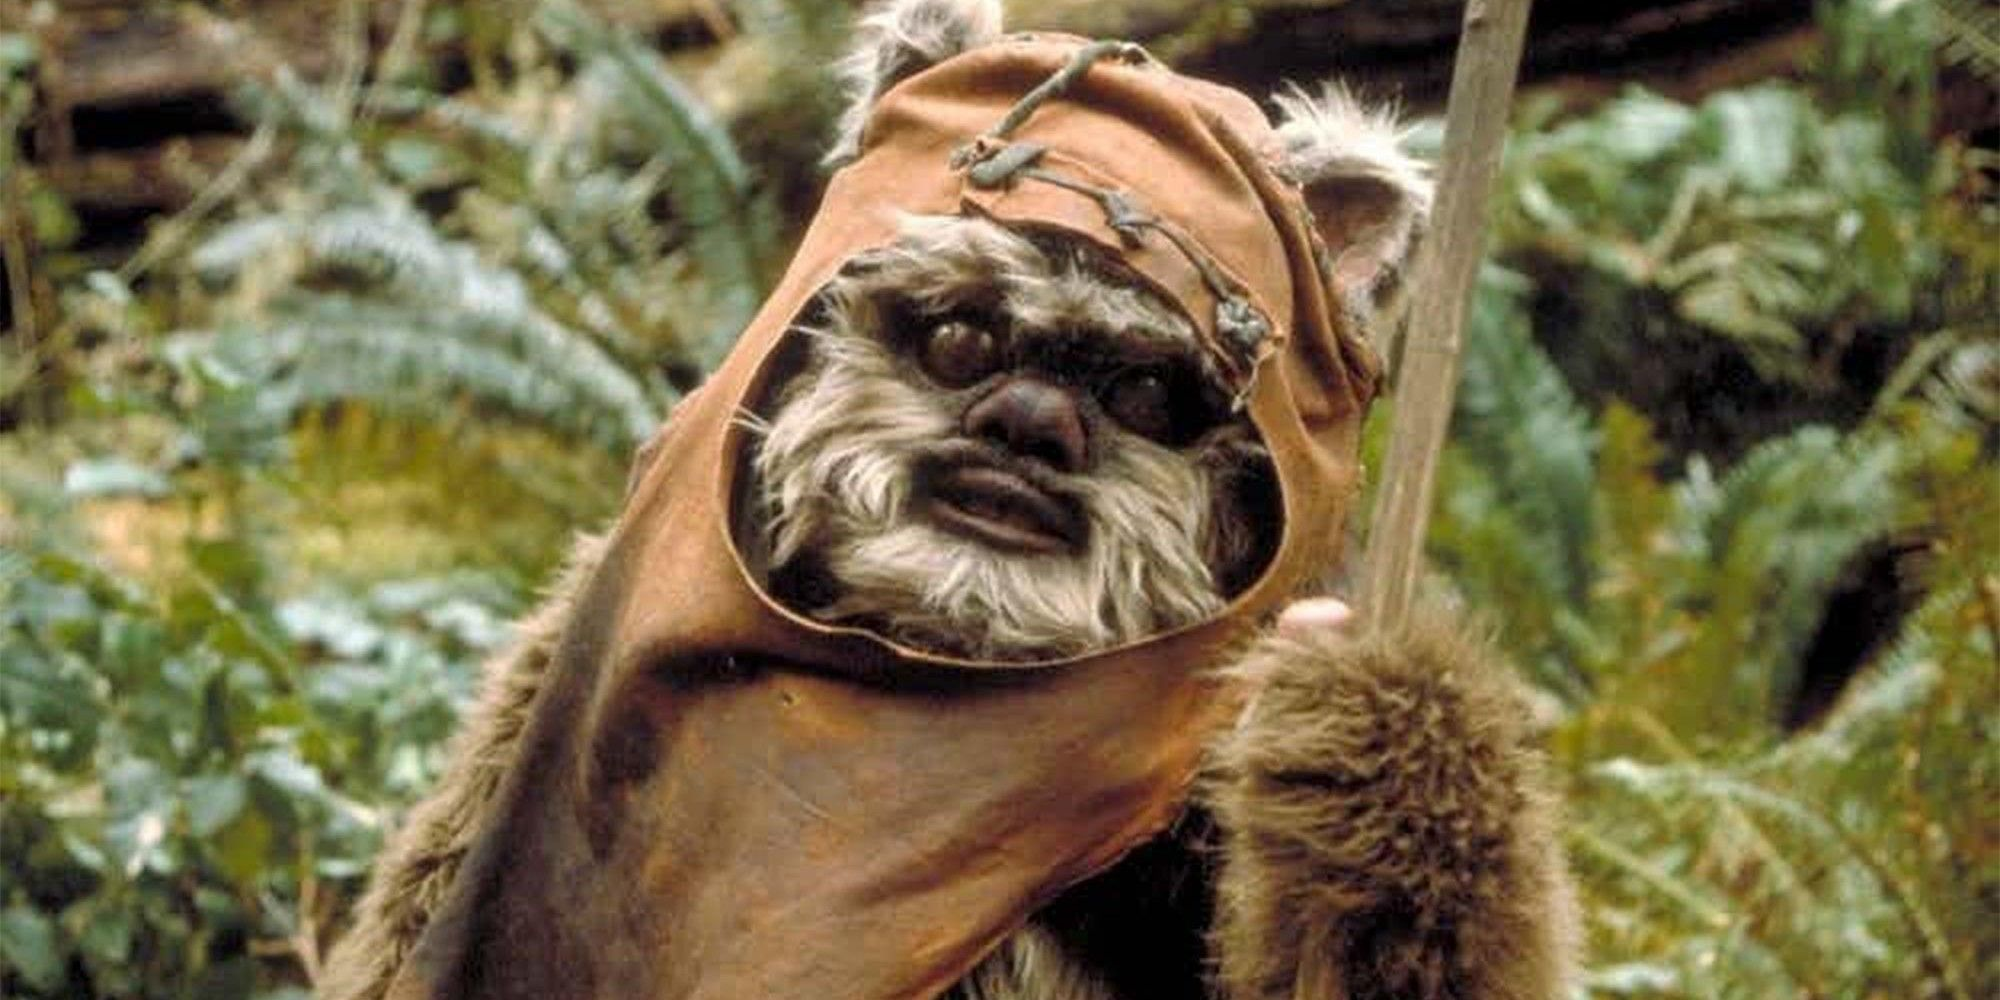 Star Wars' Forgotten Jedi Ewok Did Exist - But There's a Problem